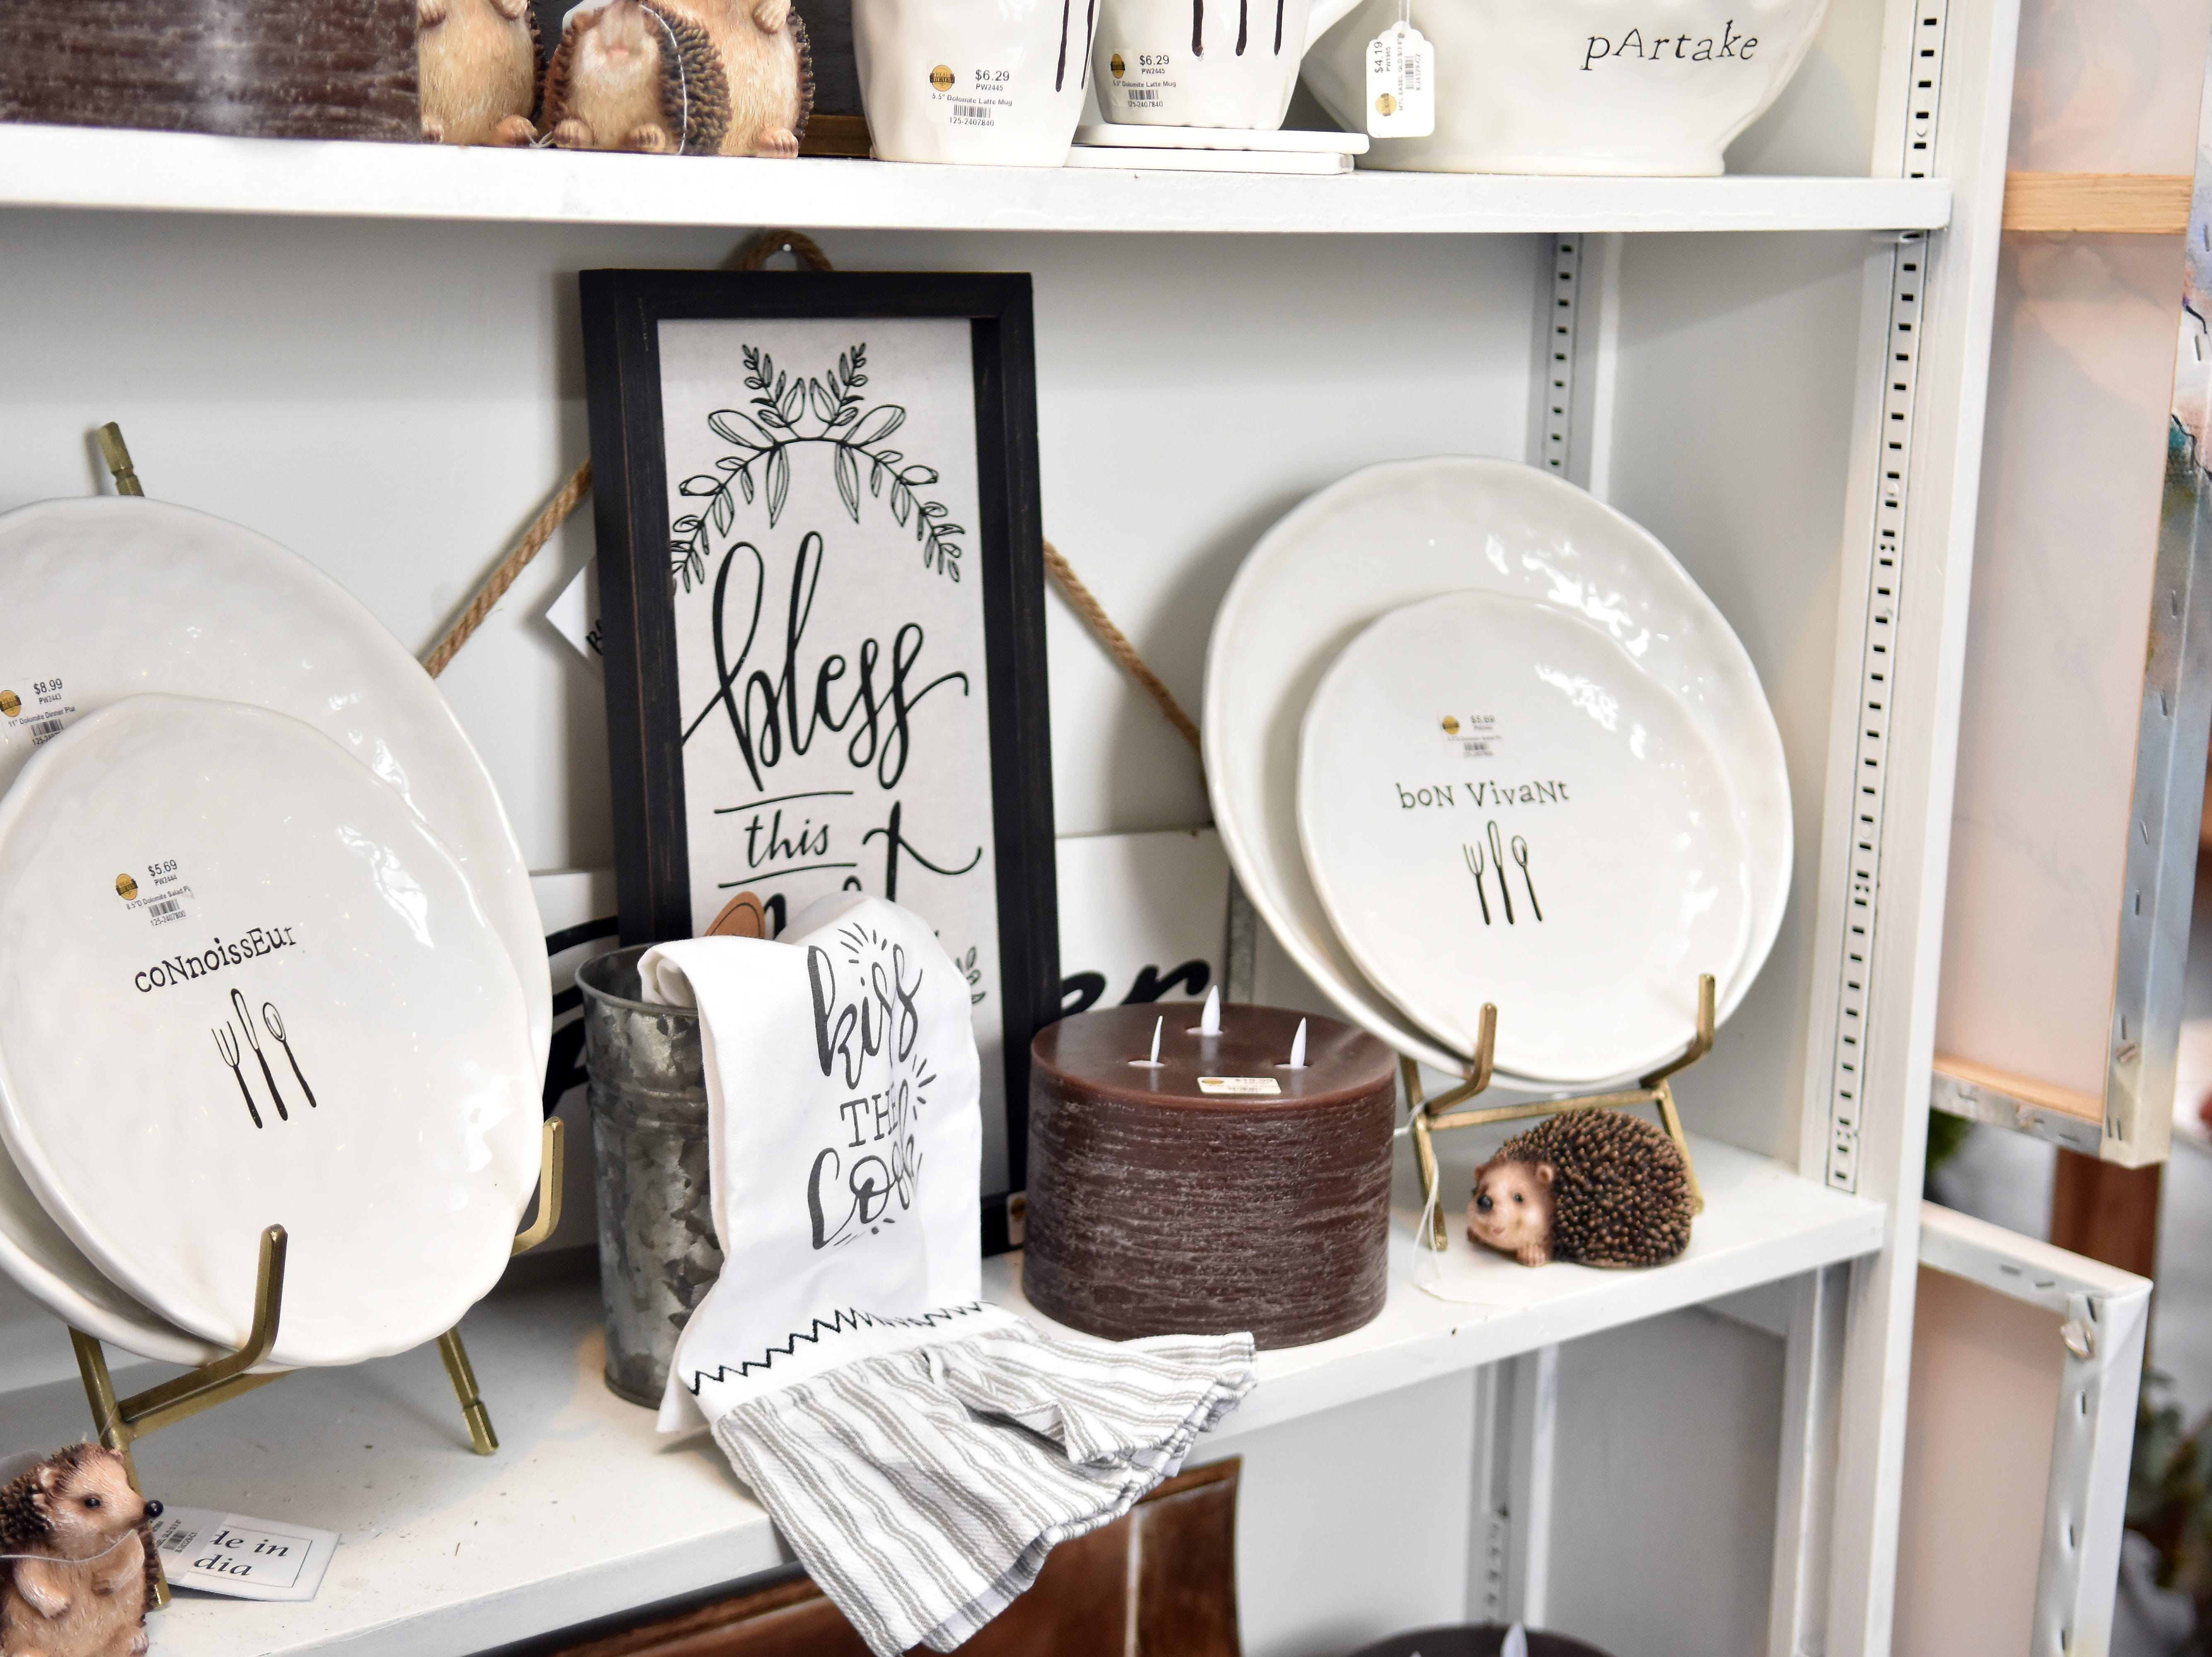 These plates add a fun element to any kitchen.